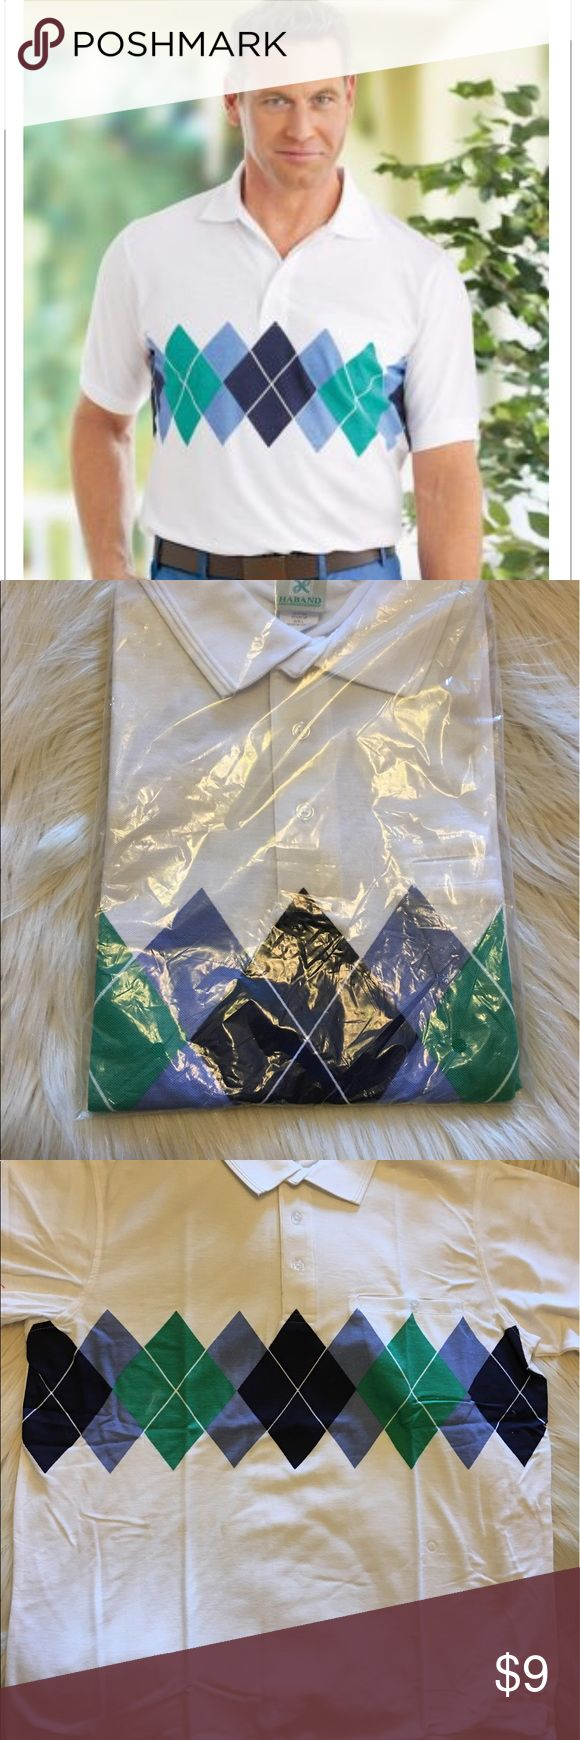 Men's Argyle Speyside Polo Size Large, New in package, there is a defect in the print shown in the photo, Argyle isn't just for the golf course anymore! With our stylish patterned polo you'll be well suited for those special occasions when you still want to be comfortable. Or just wear it when you run errands — it's perfect for everything! Welt chest pocket keeps your essentials close. Cotton/polyester is machine care. Haband Shirts Polos